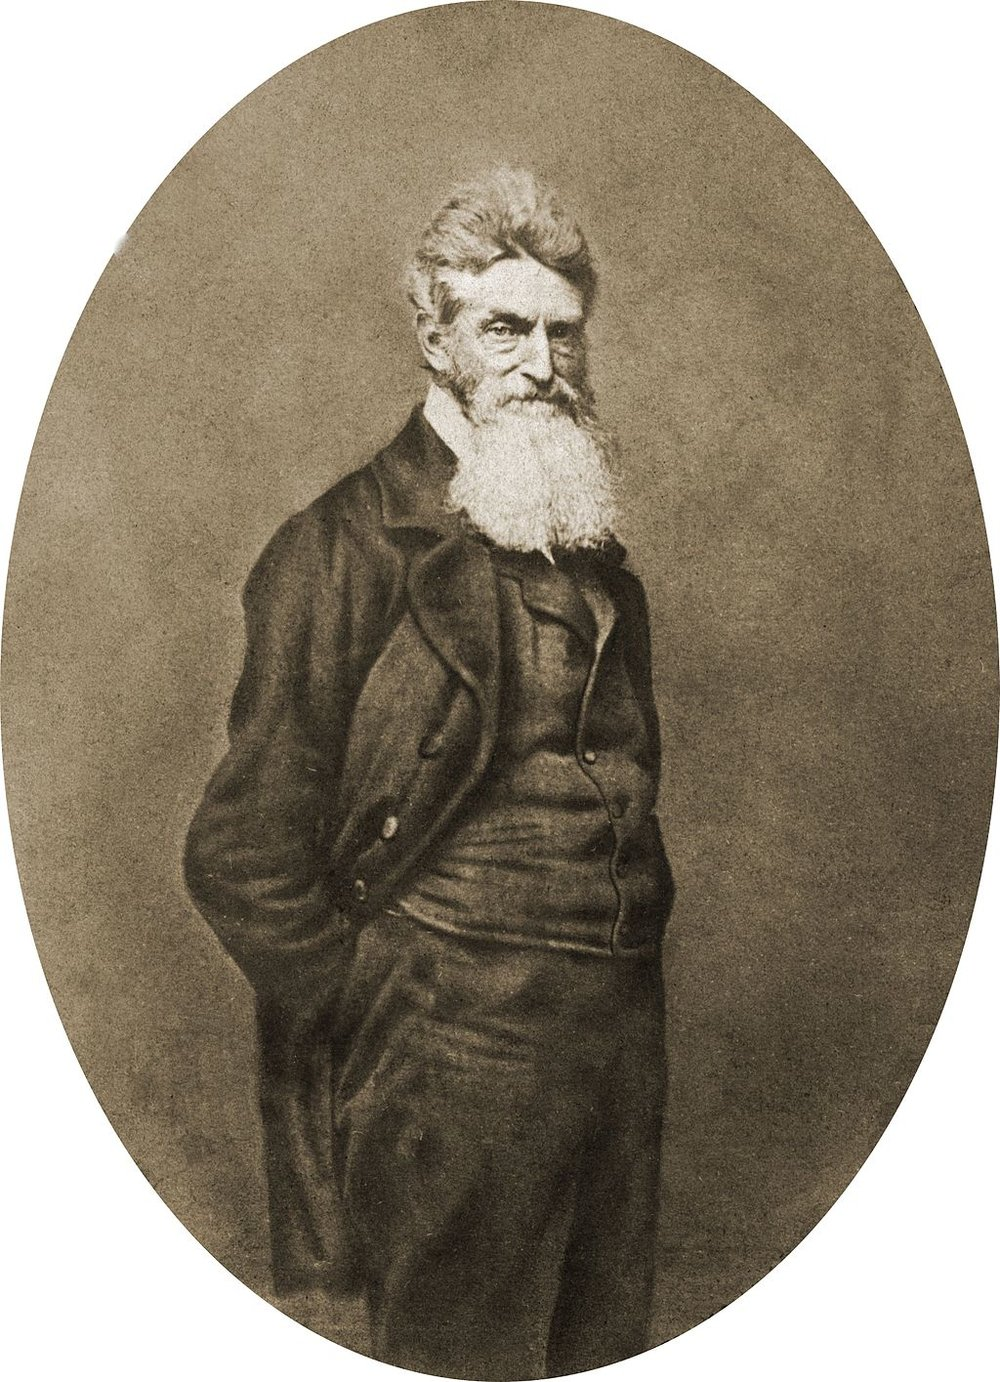 """- In his report, Lee wrote that Brown was without a doubt a """"madman."""" Yet, for a madman, Brown had been able to raise a tremendous amount of funds to finance his war against America's greatest evil, even when figures like Harriet Tubman and Frederick Douglass remained uncommitted to his plans. As Brown was being restrained so that he could be taken to jail, a marine uncovered a note that provided insight into the financial machinery that moved Brown to attack. The note read, """"When the first blow is struck, there will be more money to help."""" The person who wrote this letter had provided $30,000, most of the funds that John Brown needed to finance his raid - nearly $900,000 today. At the time, Brown's captors believed that the note was written by a wealthy Northerner. It would take nearly half a century for the nation to learn that the letter and money actually came from an African American woman."""